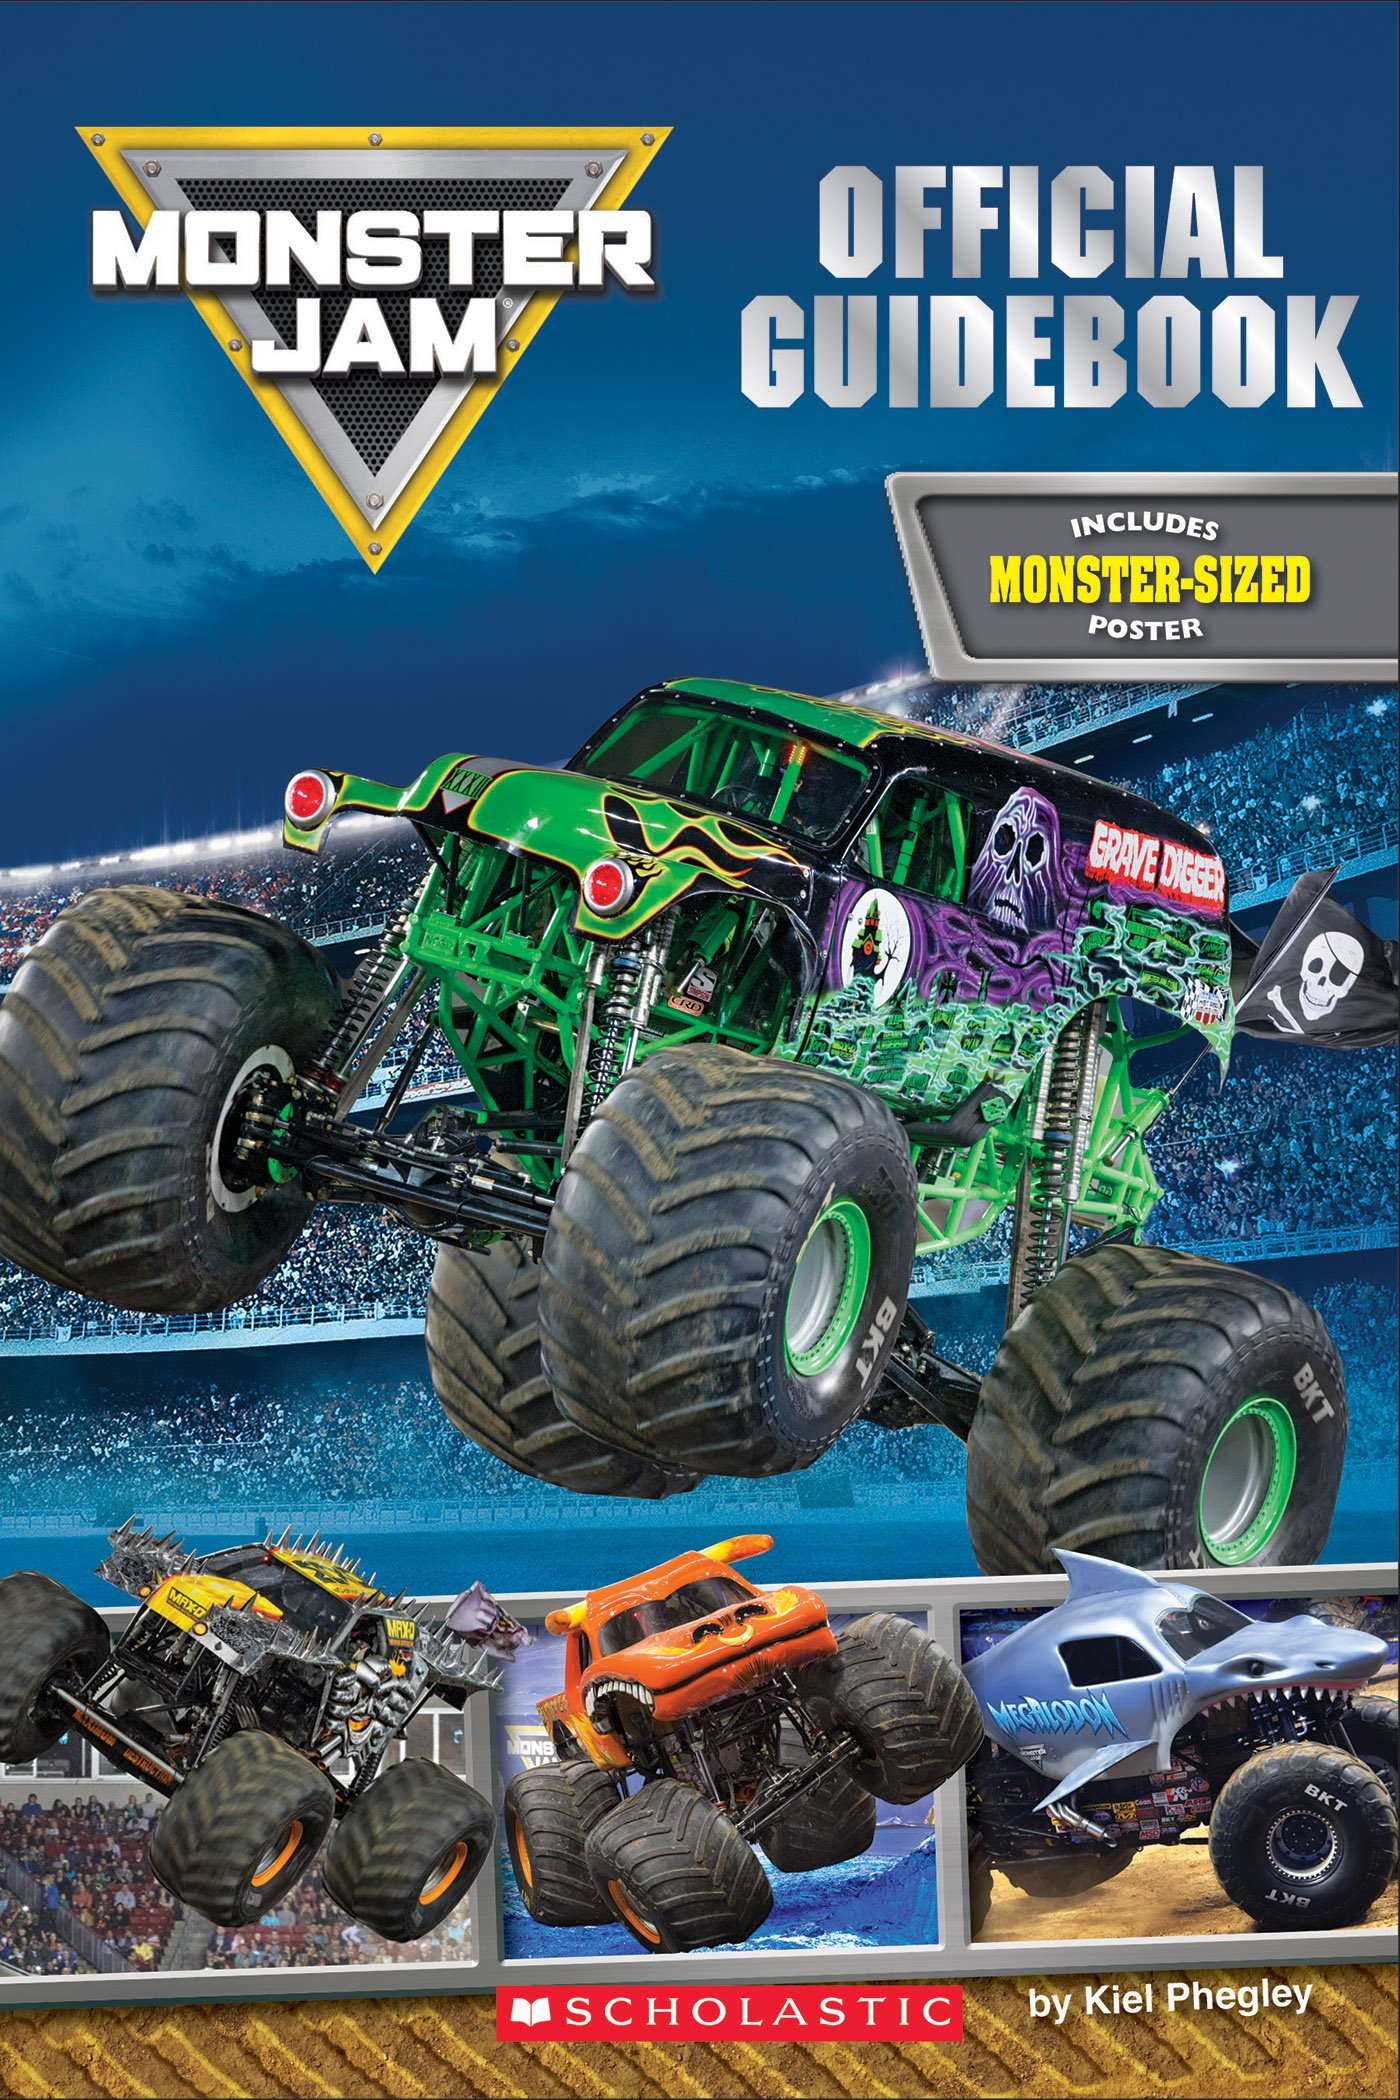 Image OfMonster Jam Official Guidebook